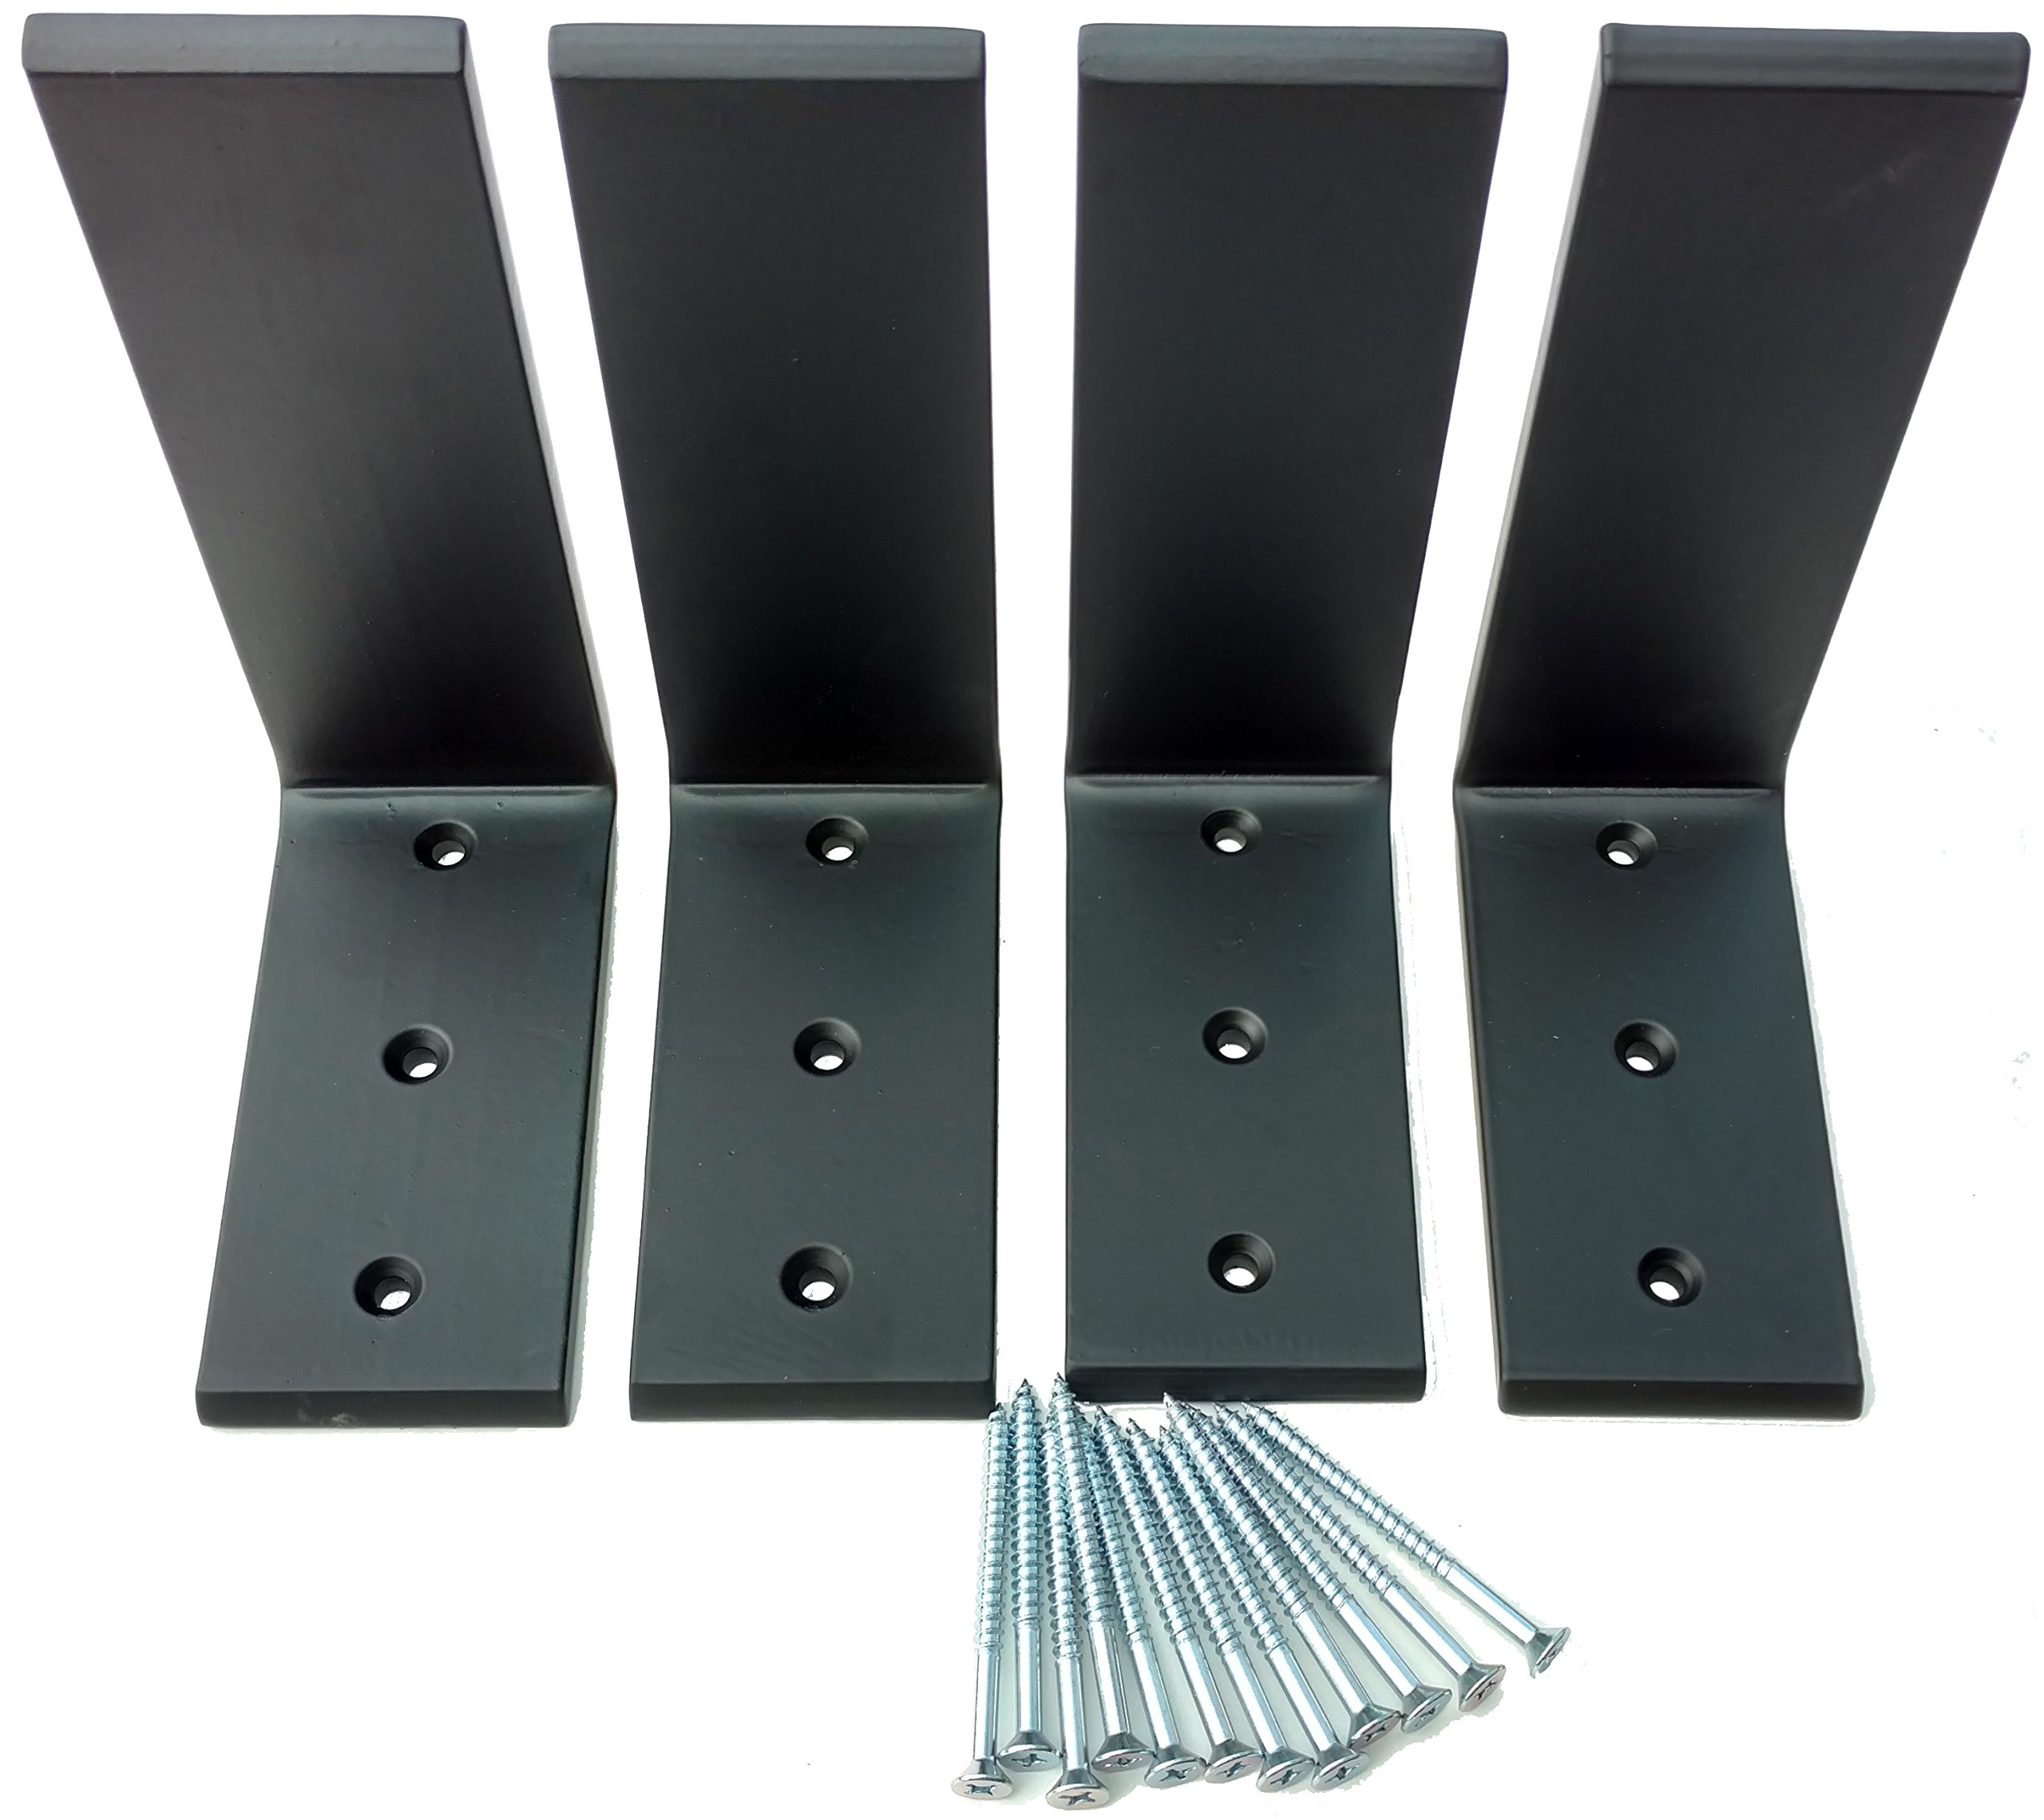 4 Heavy Duty Black Steel 6'' x 8'' Countertop Support Brackets! Corbel L Shelf